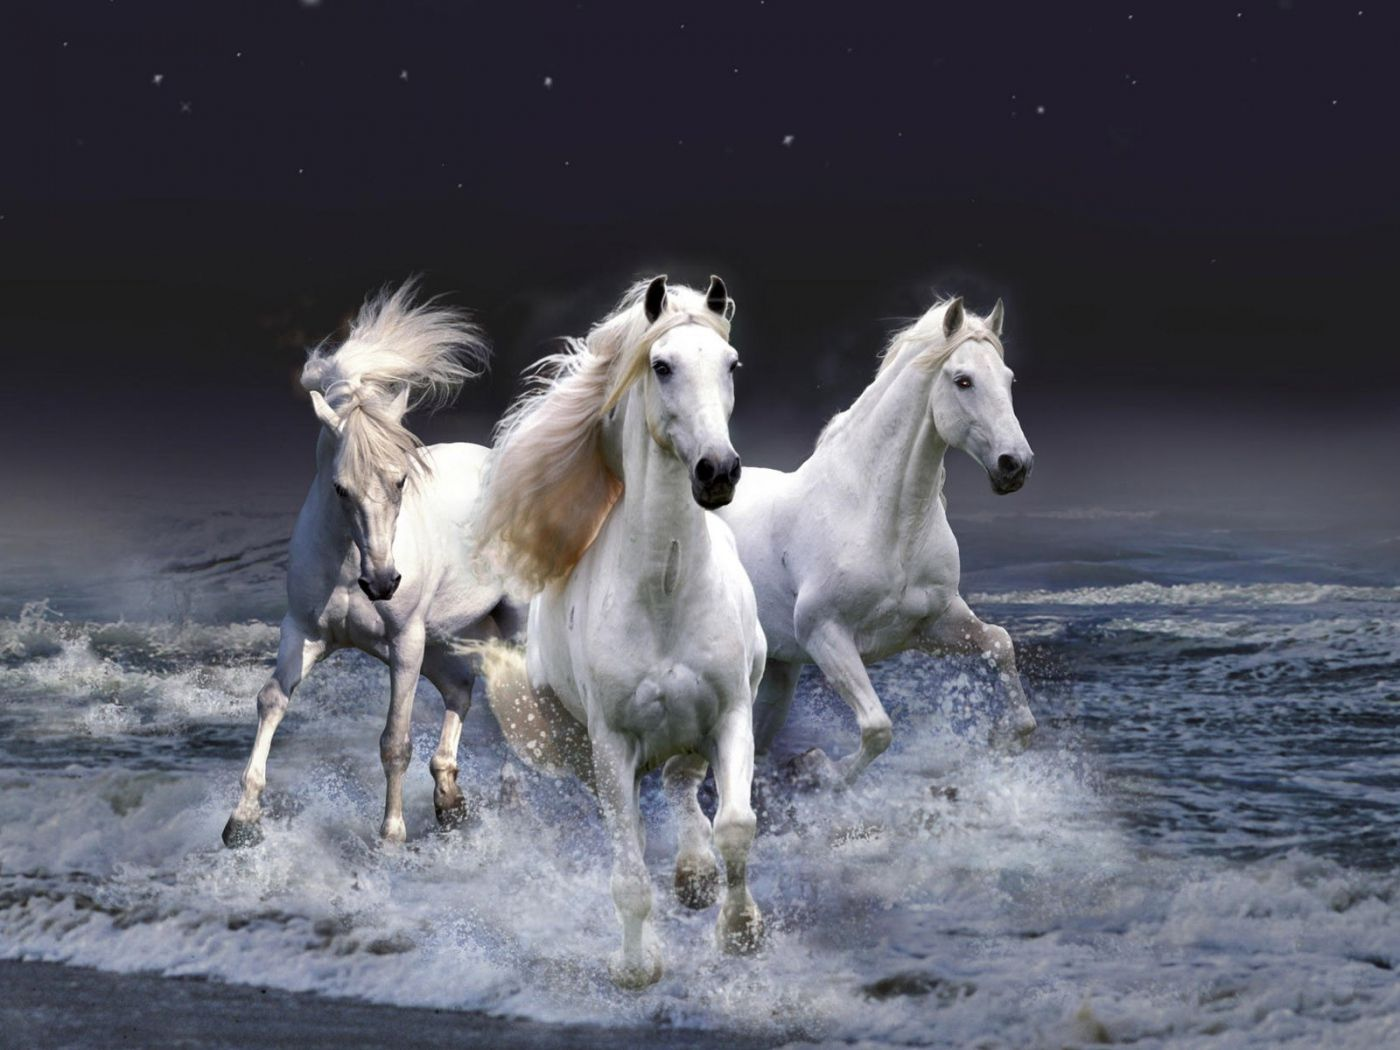 Must see Wallpaper Horse Iphone 5s - 8a5350ebb8902552e14d79f228024f5c  Image_773778.jpg